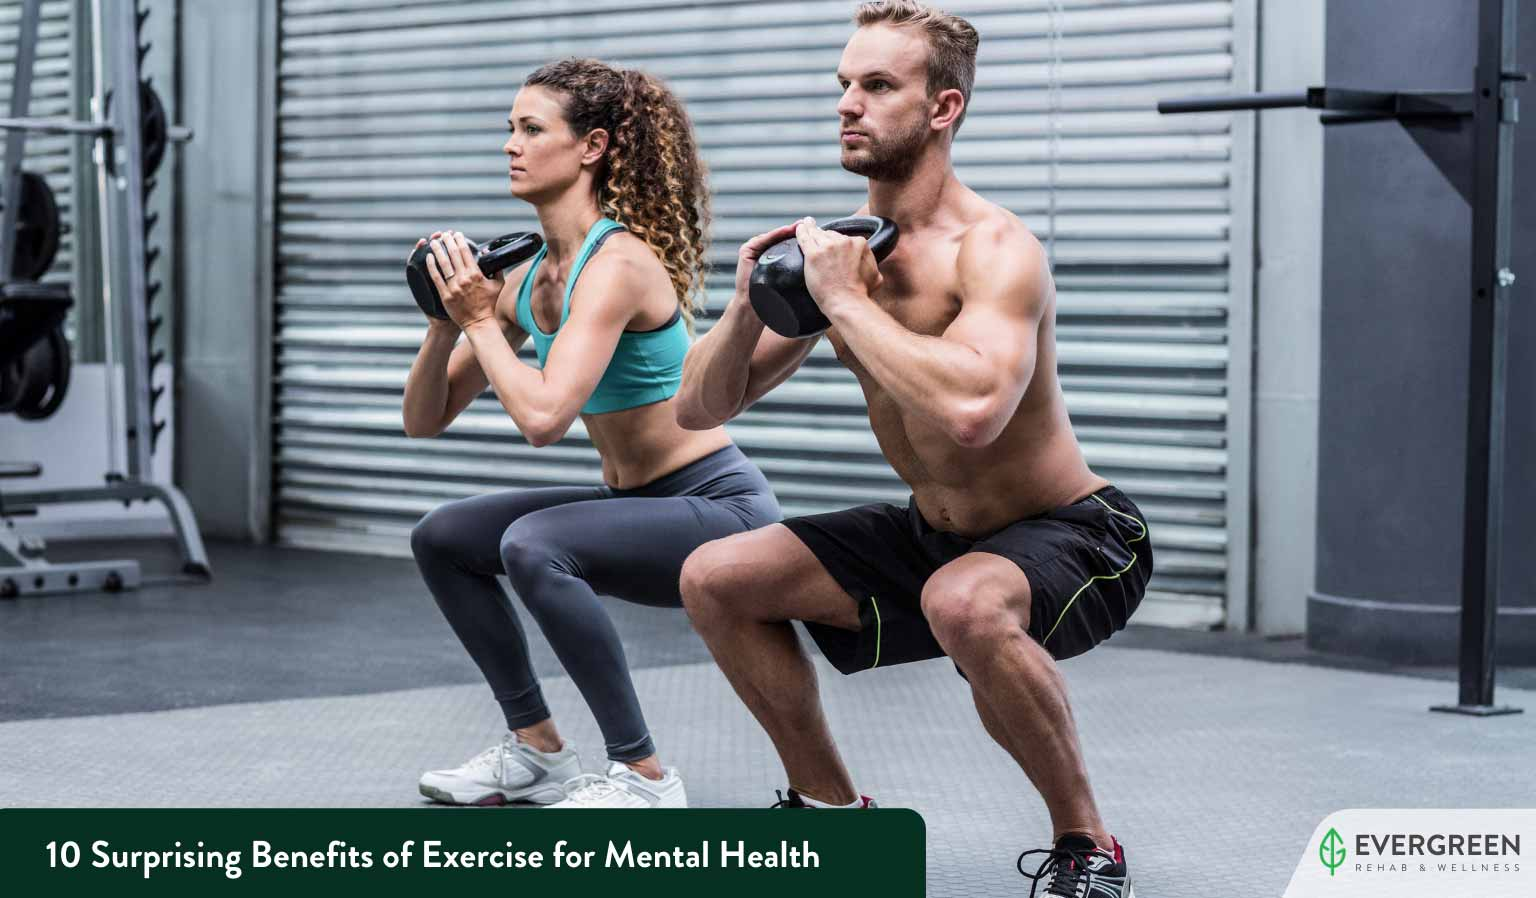 10 Surprising Benefits of Exercise for Mental Health